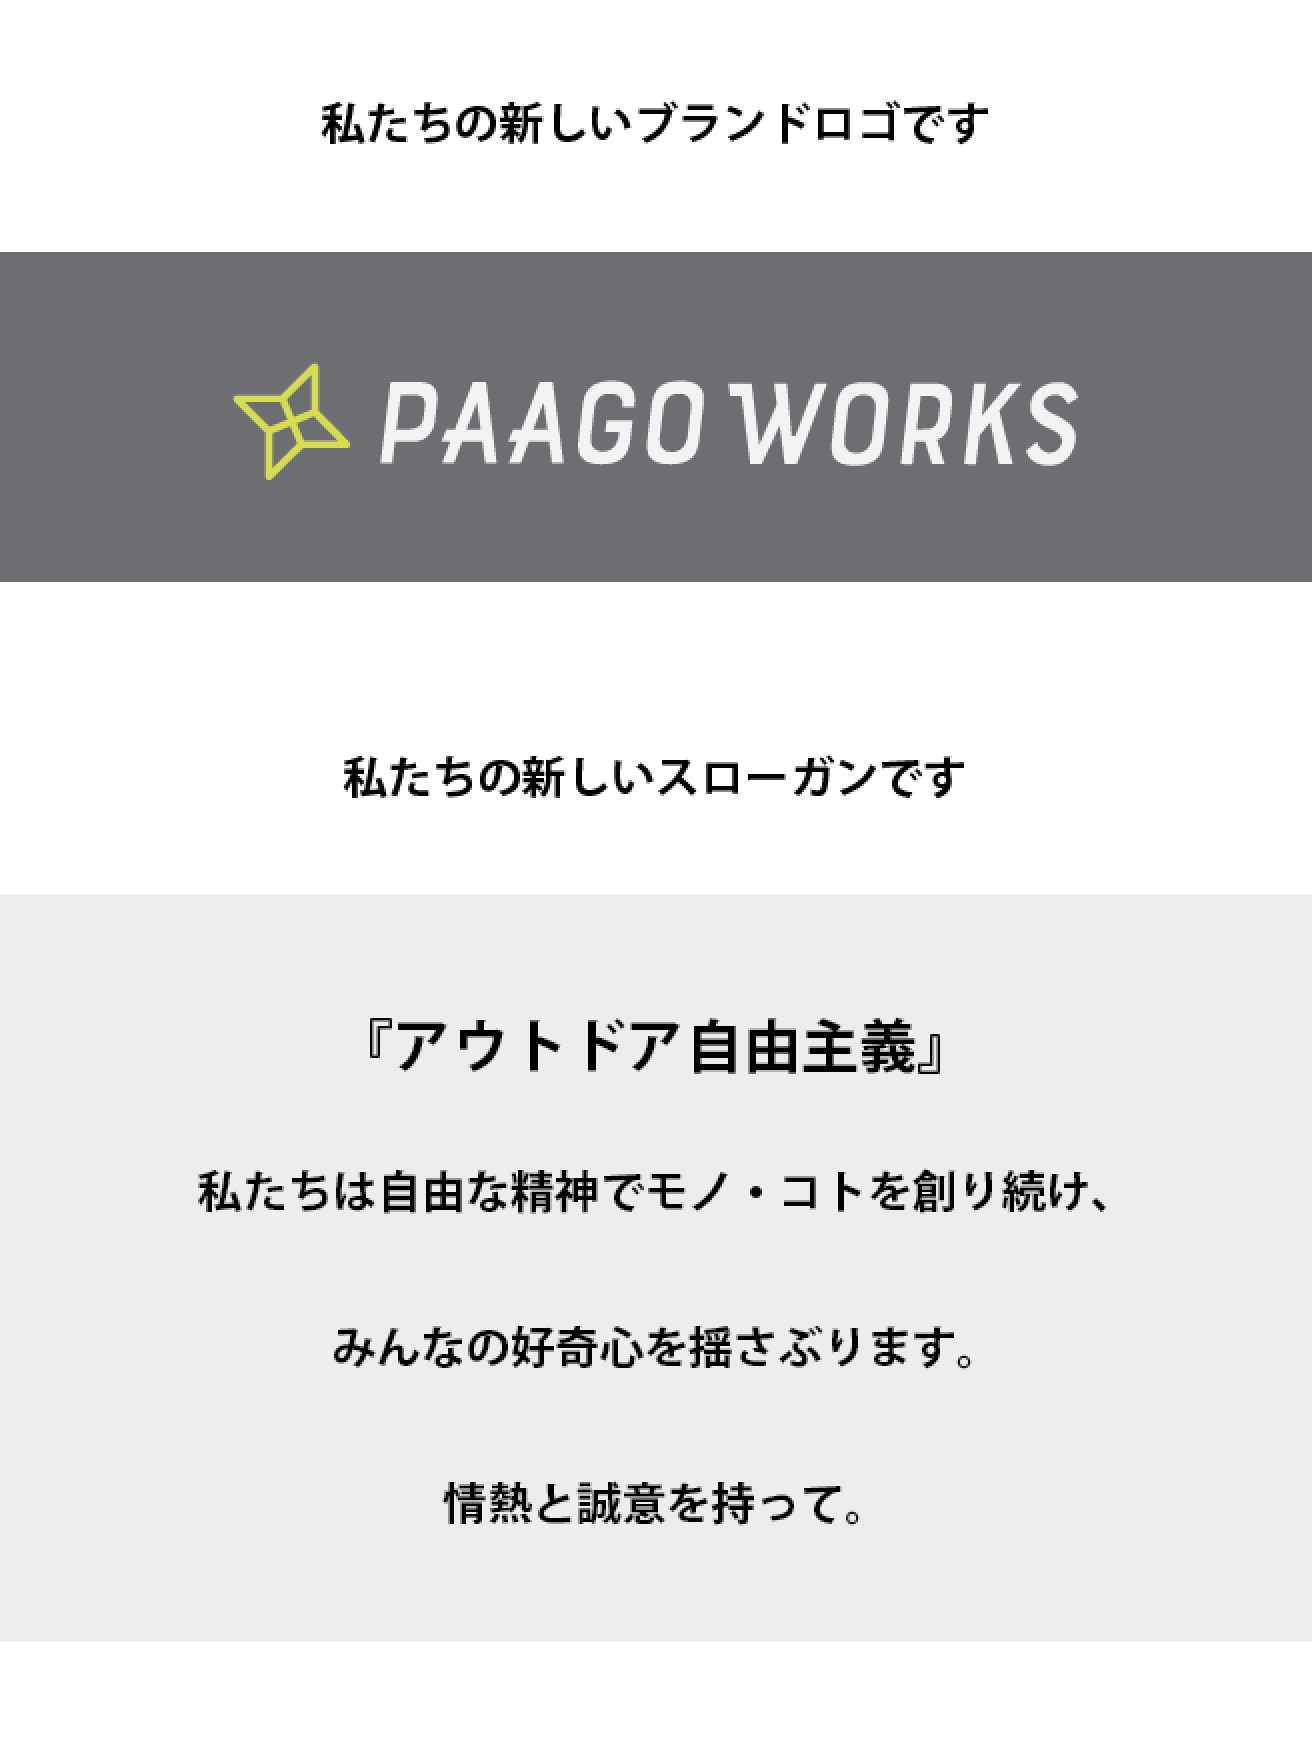 PAAGOWORKS NEW LOGO